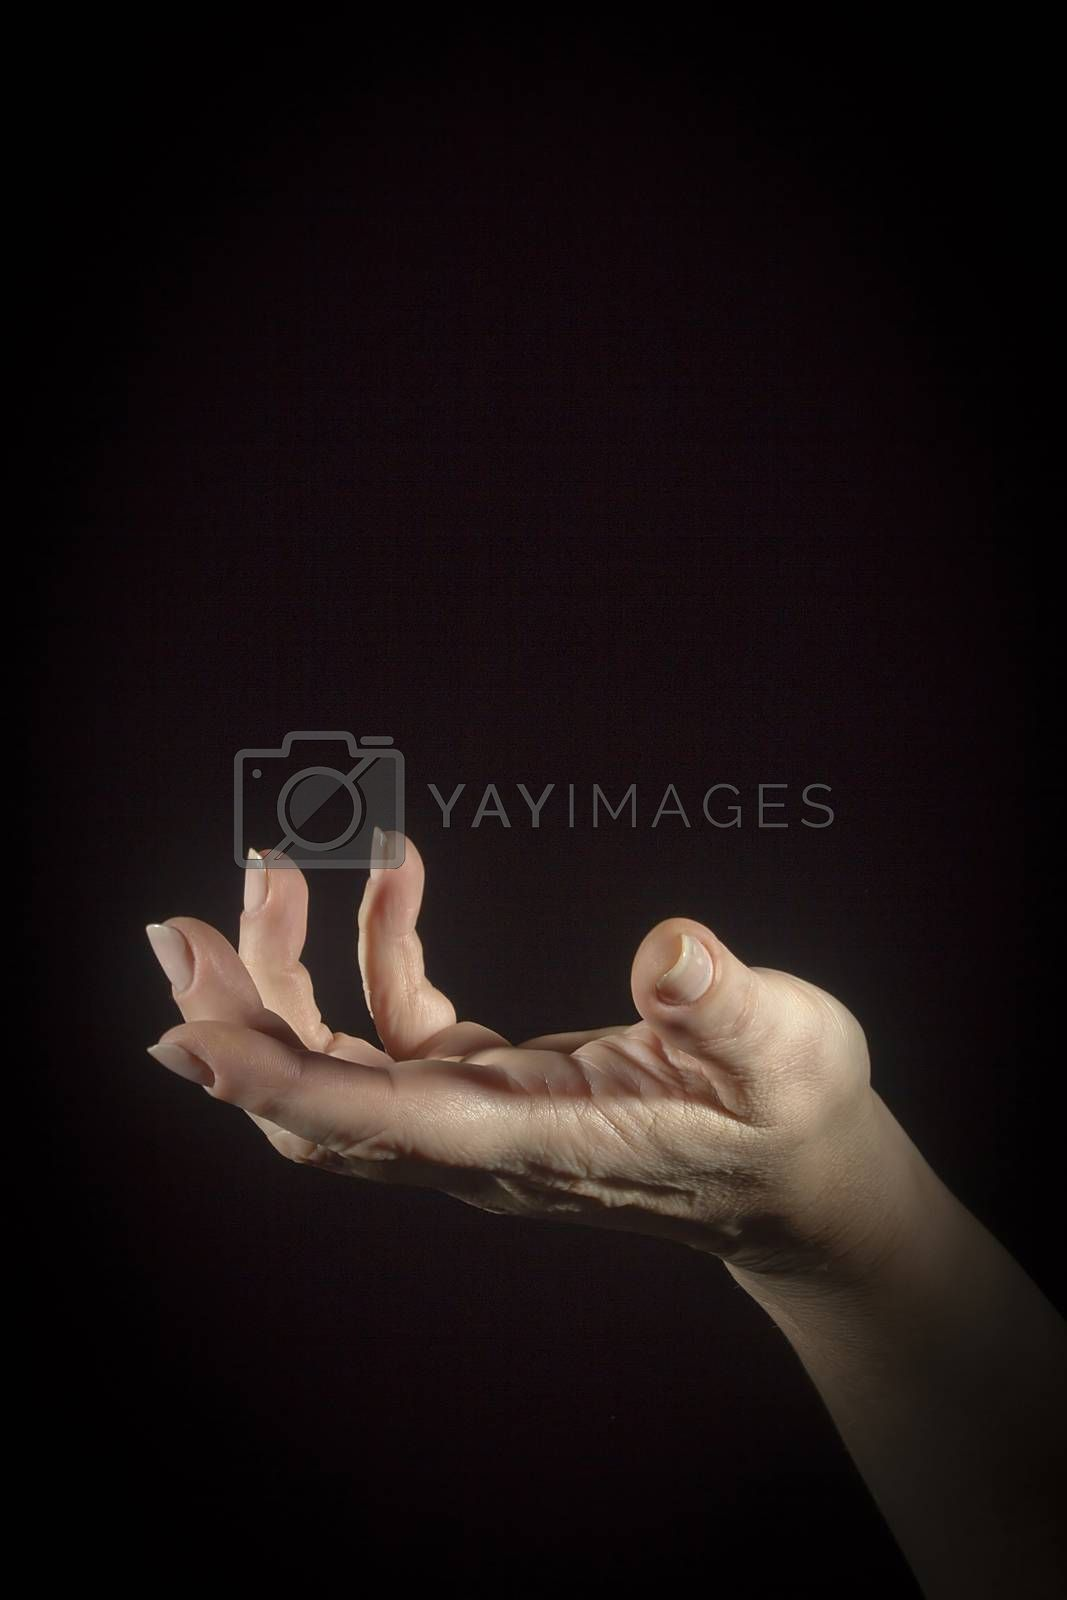 Female hand showing open gesture on black background